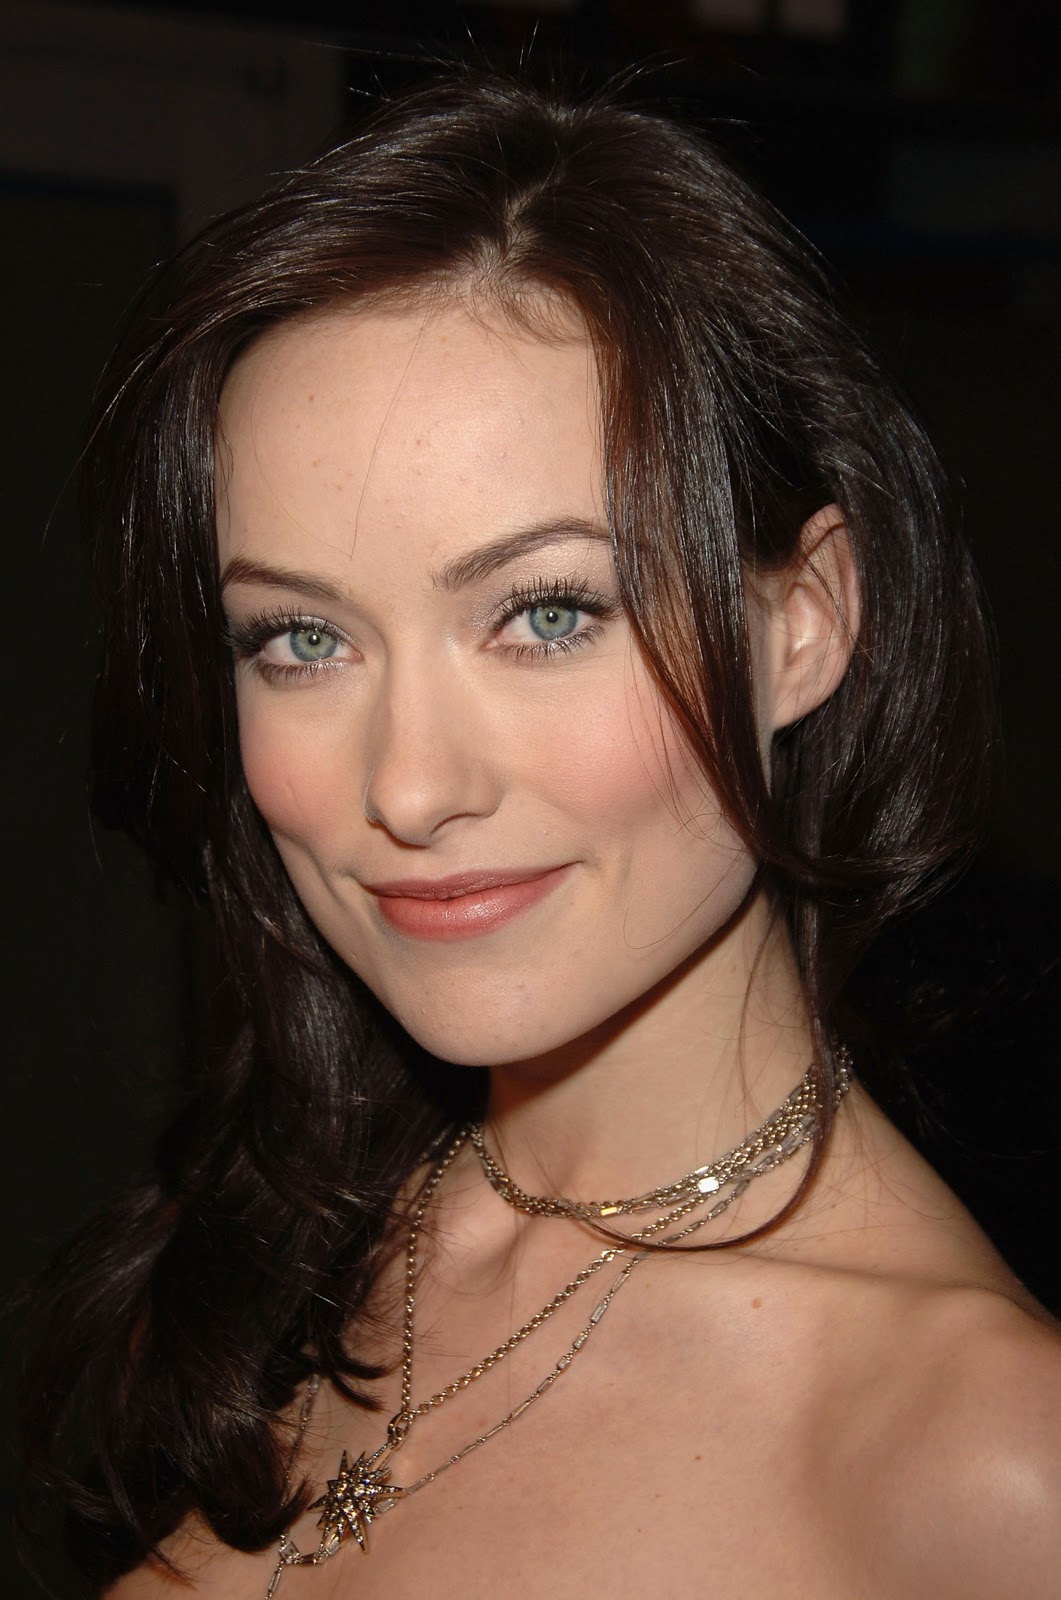 Olivia Wilde Profile And New Pictures 2013: Olivia Wilde Special Pictures (11)